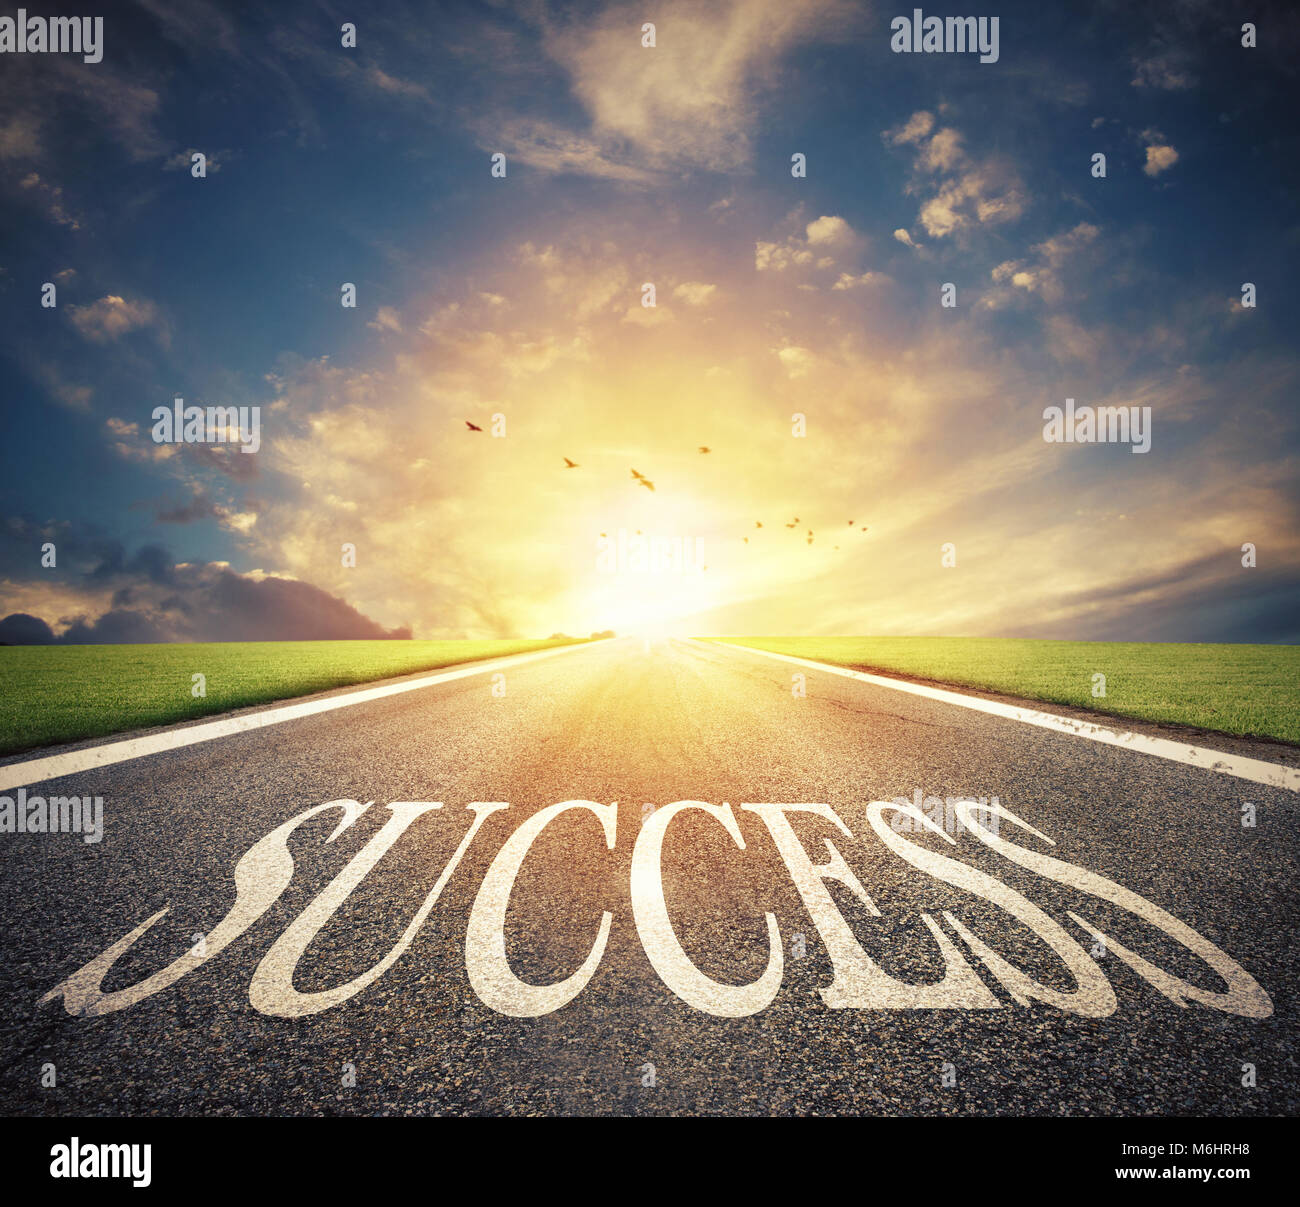 Road of the success. The way for new business opportunities - Stock Image